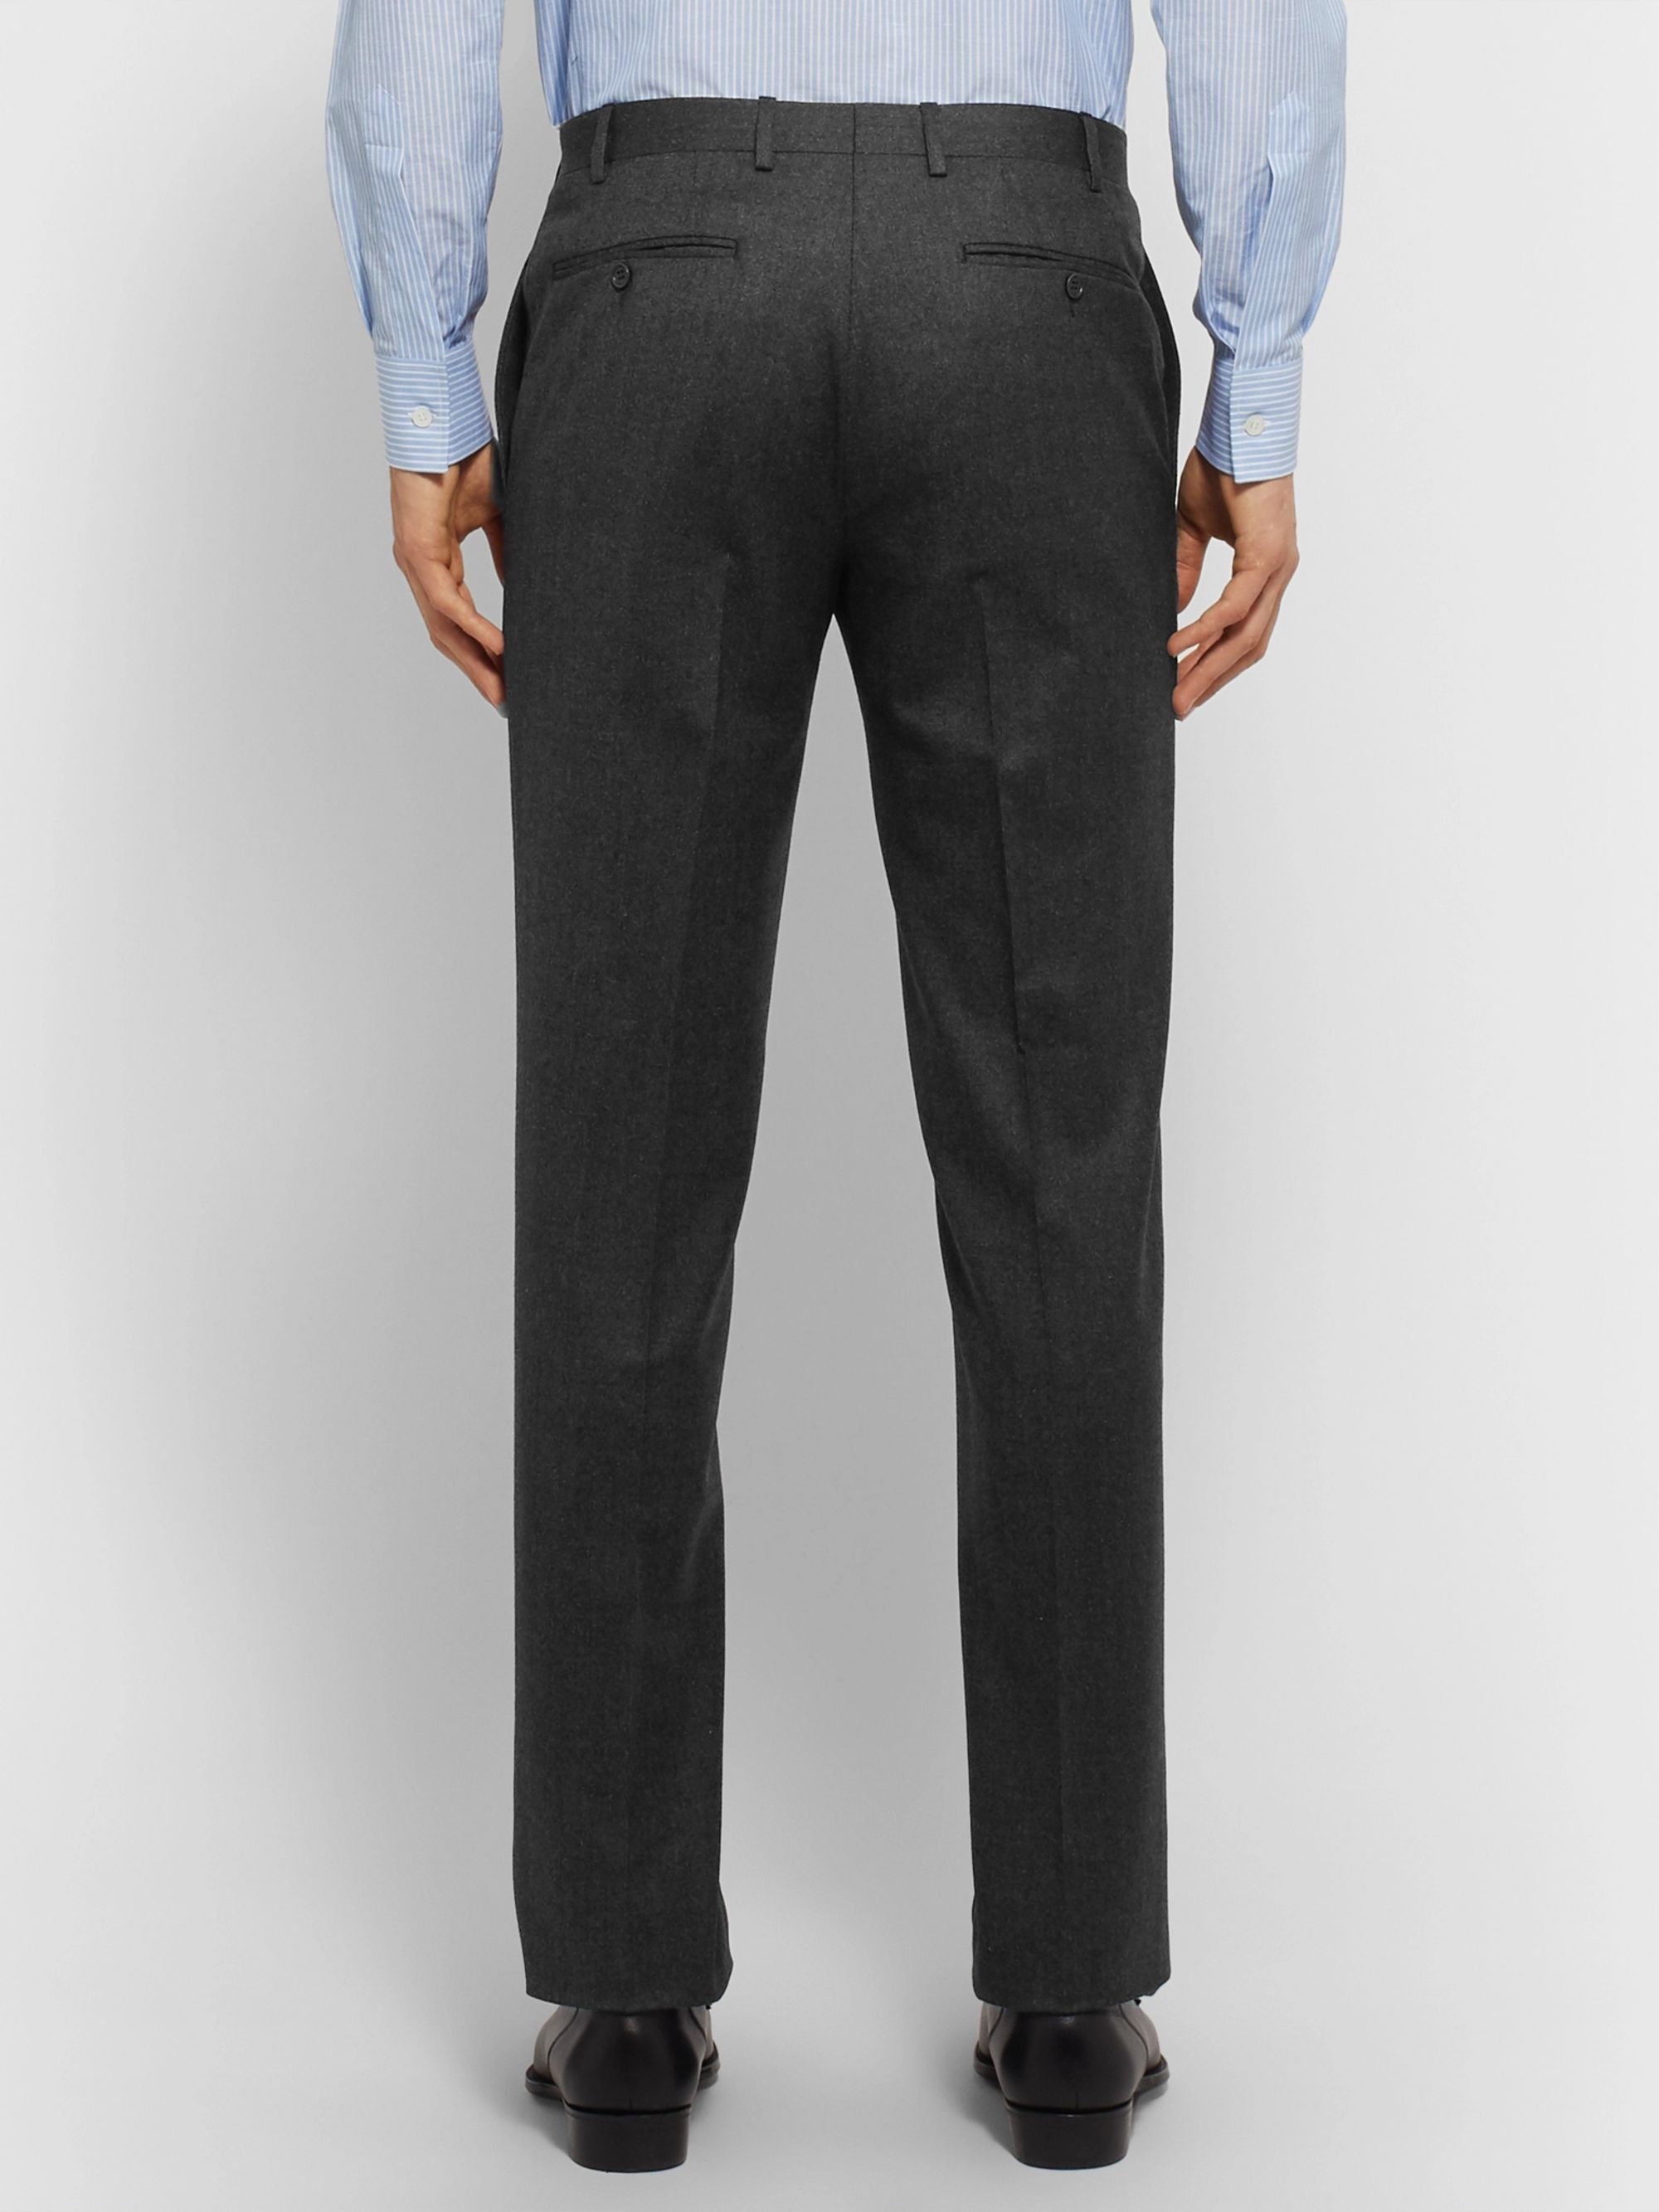 Canali Charcoal Super 120s Virgin Wool Suit Trousers